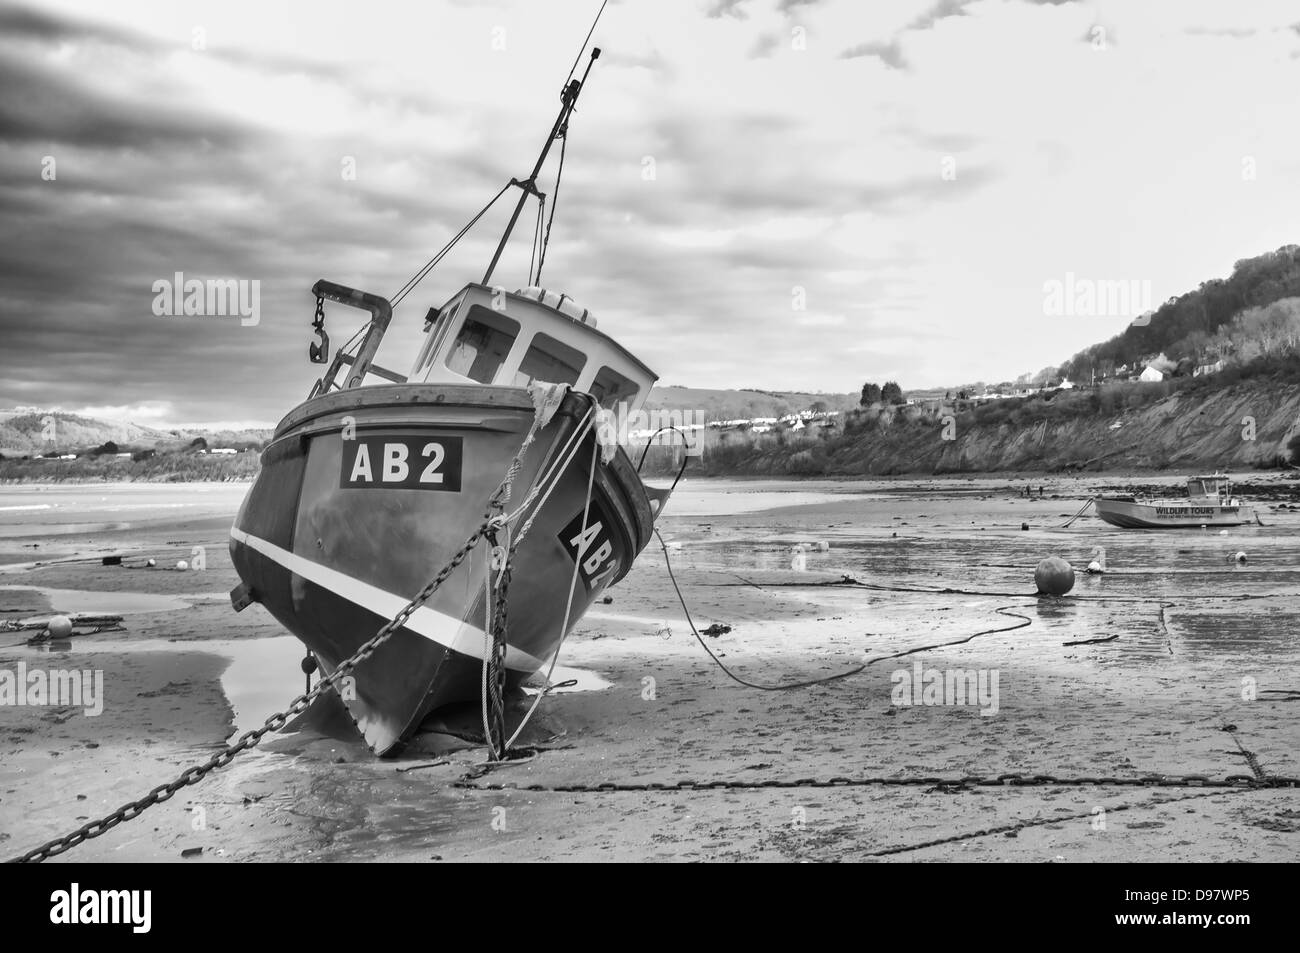 Fishing boat AB2 at New Quay Harbour West Wales ceredigion mono Stock Photo